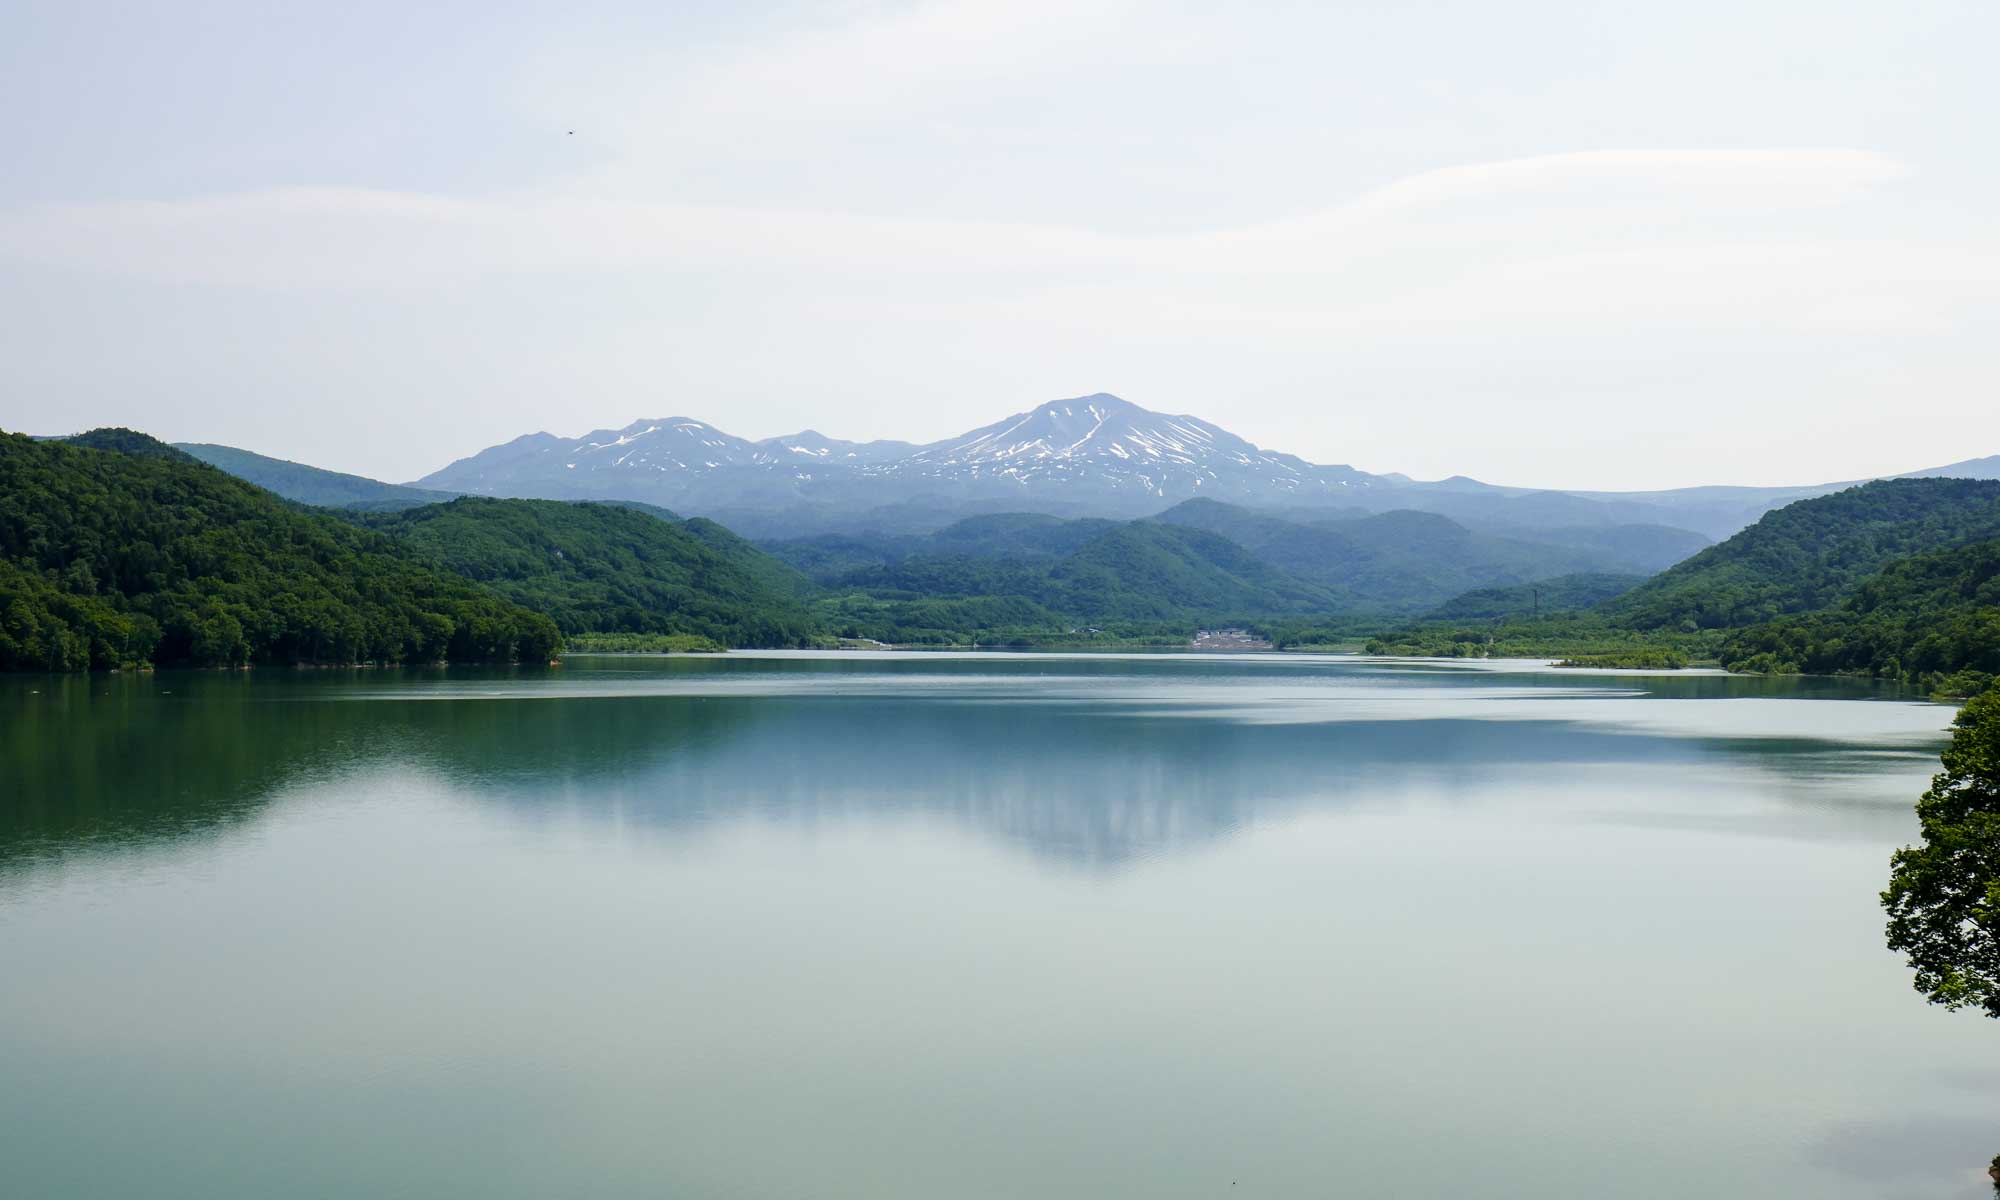 Asahidake viewed from Chubetsu Lake